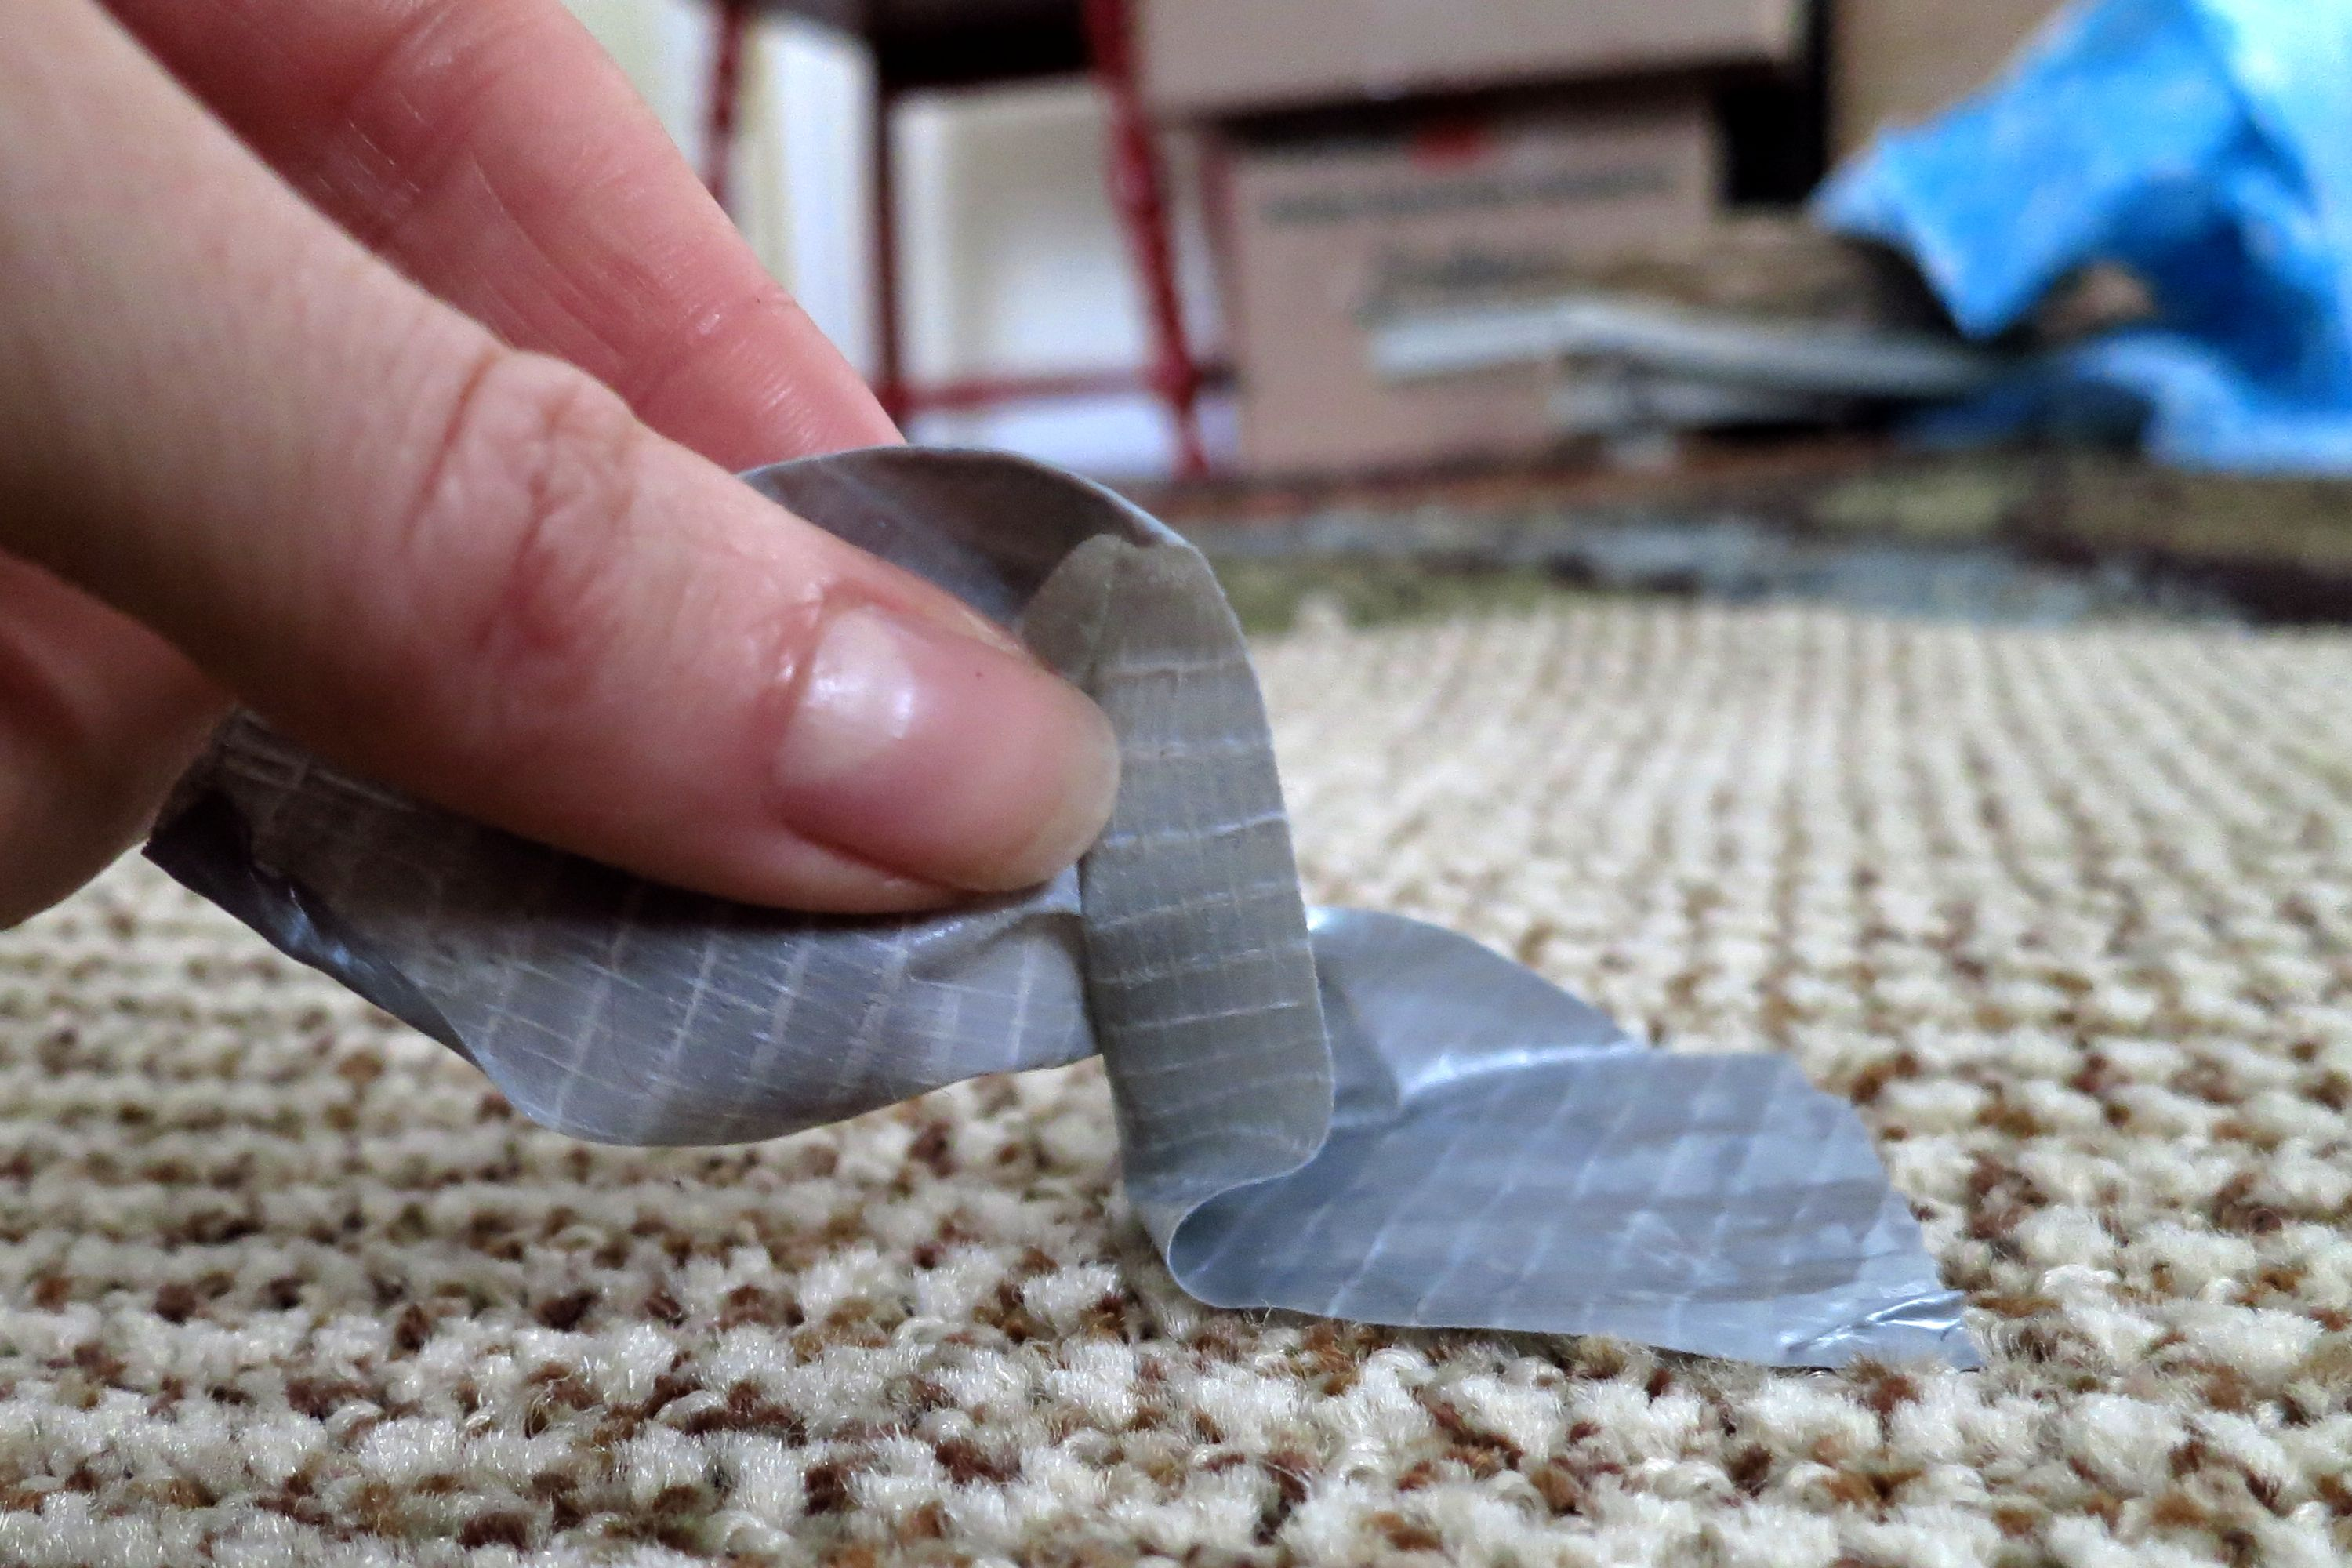 How To Remove Duct Tape Residue From Carpet Remove Duct Tape